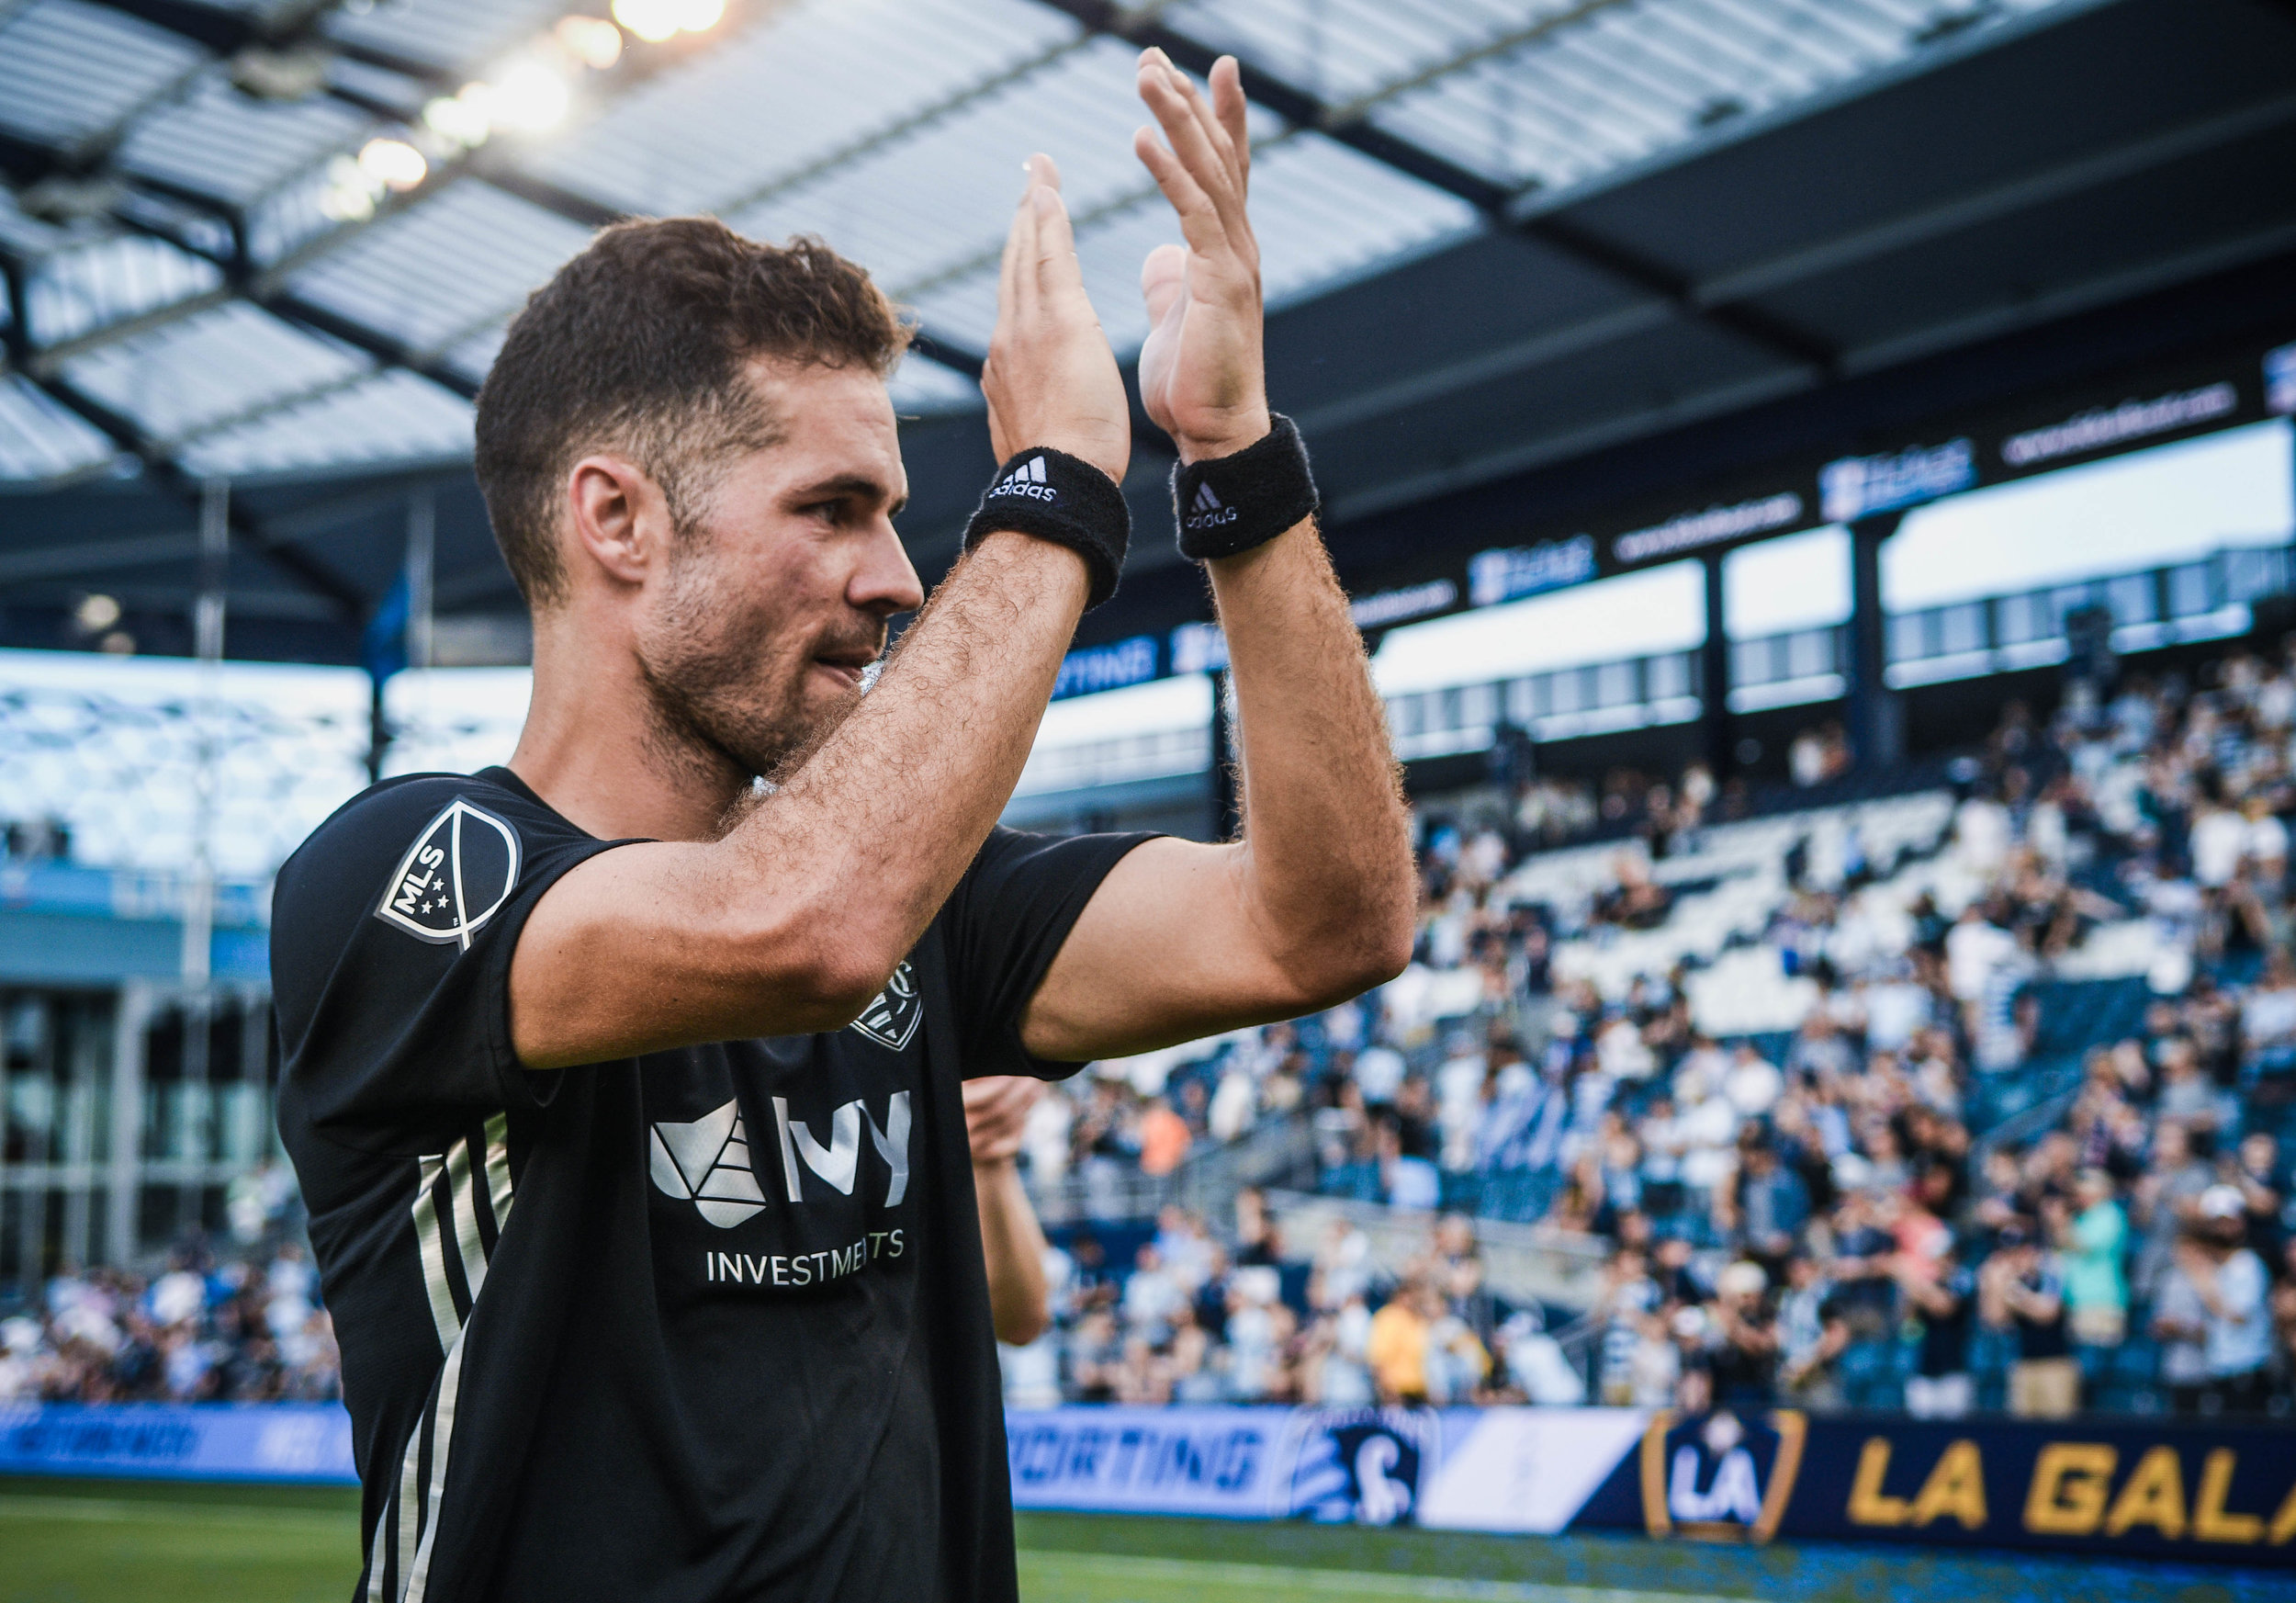 Sporting KC - Photography Intern (May 2019 - Present)Sporting Kansas City is a professional soccer club playing in Major League Soccer located inKansas City, Kansas.